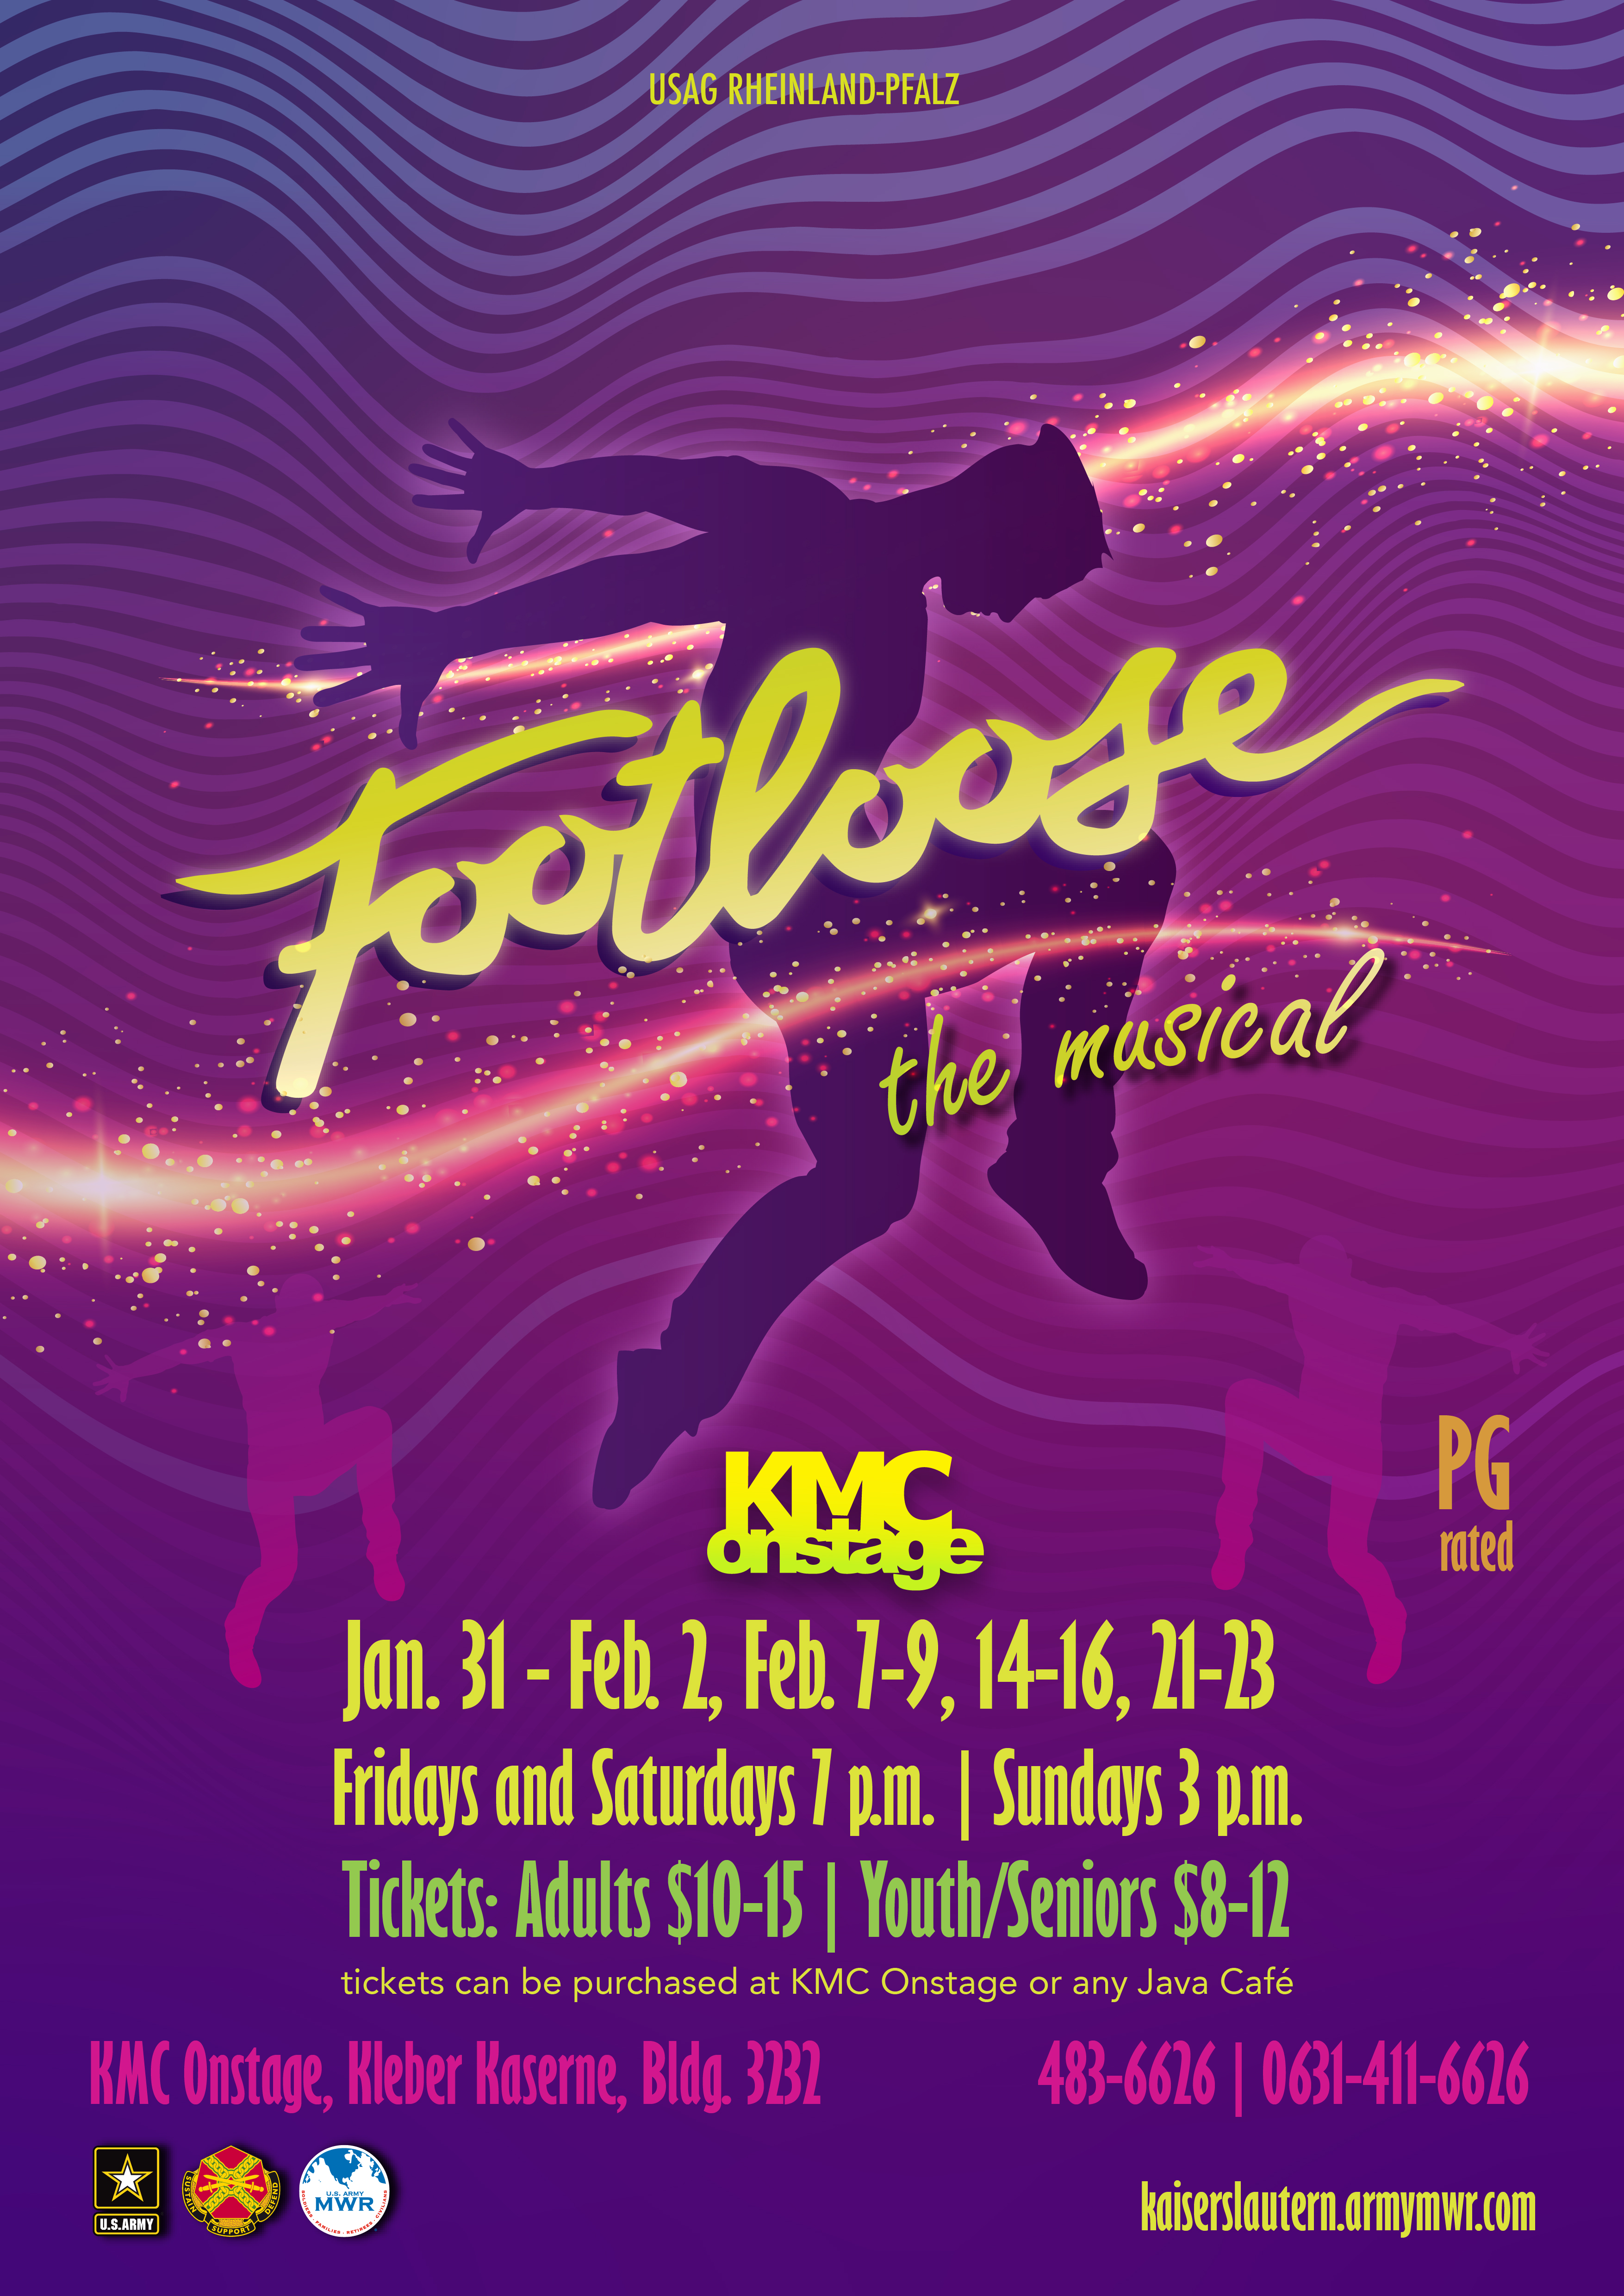 KL KMC Onstage Footloose Poster Dec 2019.jpg